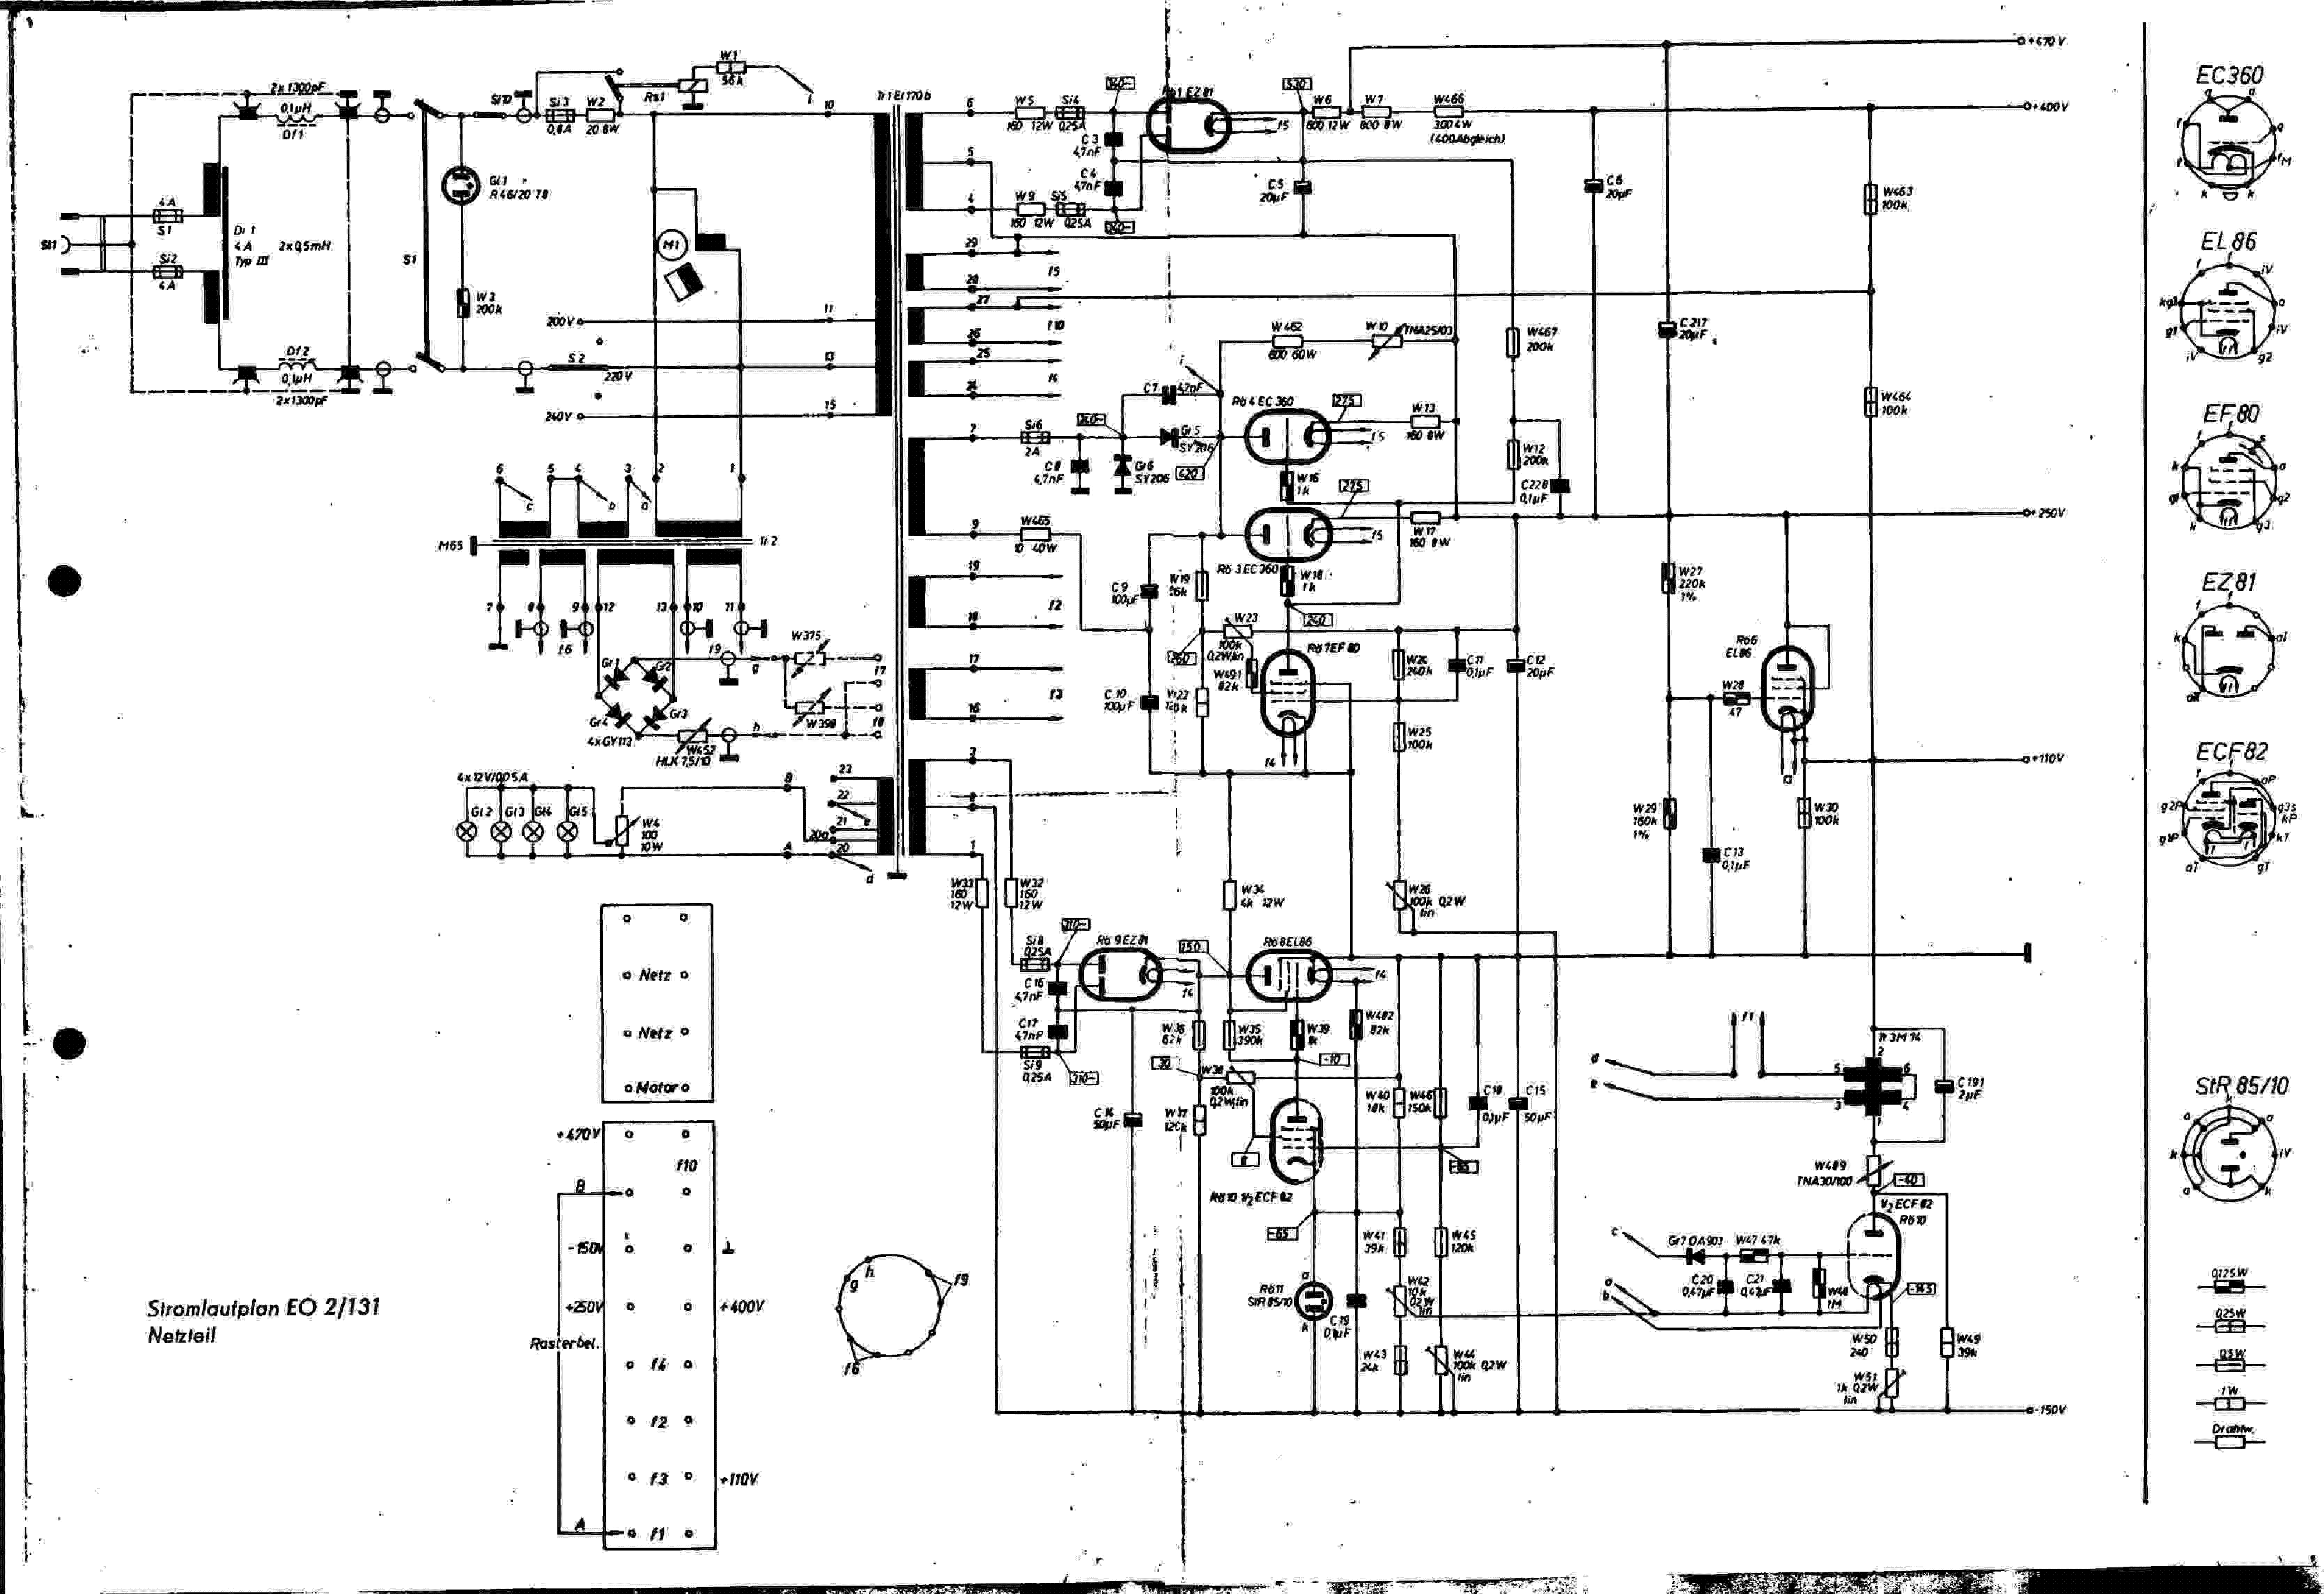 Oscilloscope Schematics For Free